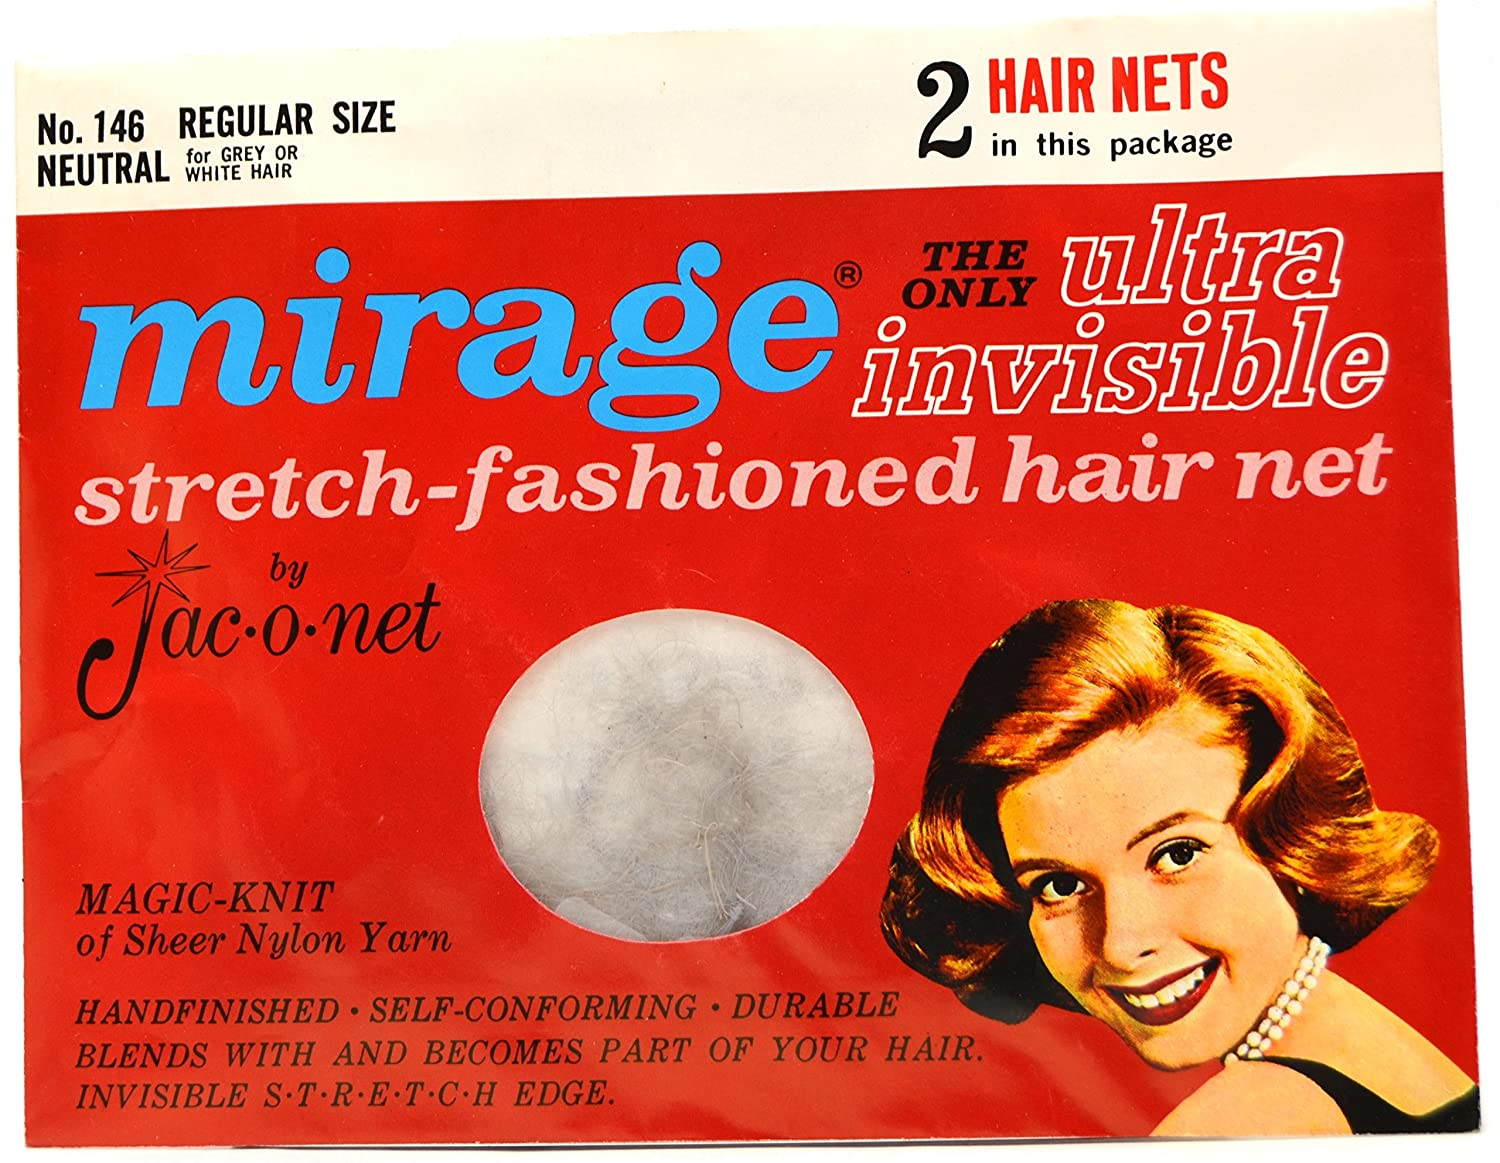 Jac-o-net Mirage Ultra Invisible Hair Net Regular Size Neutral No. 146 2 Nets Per Package